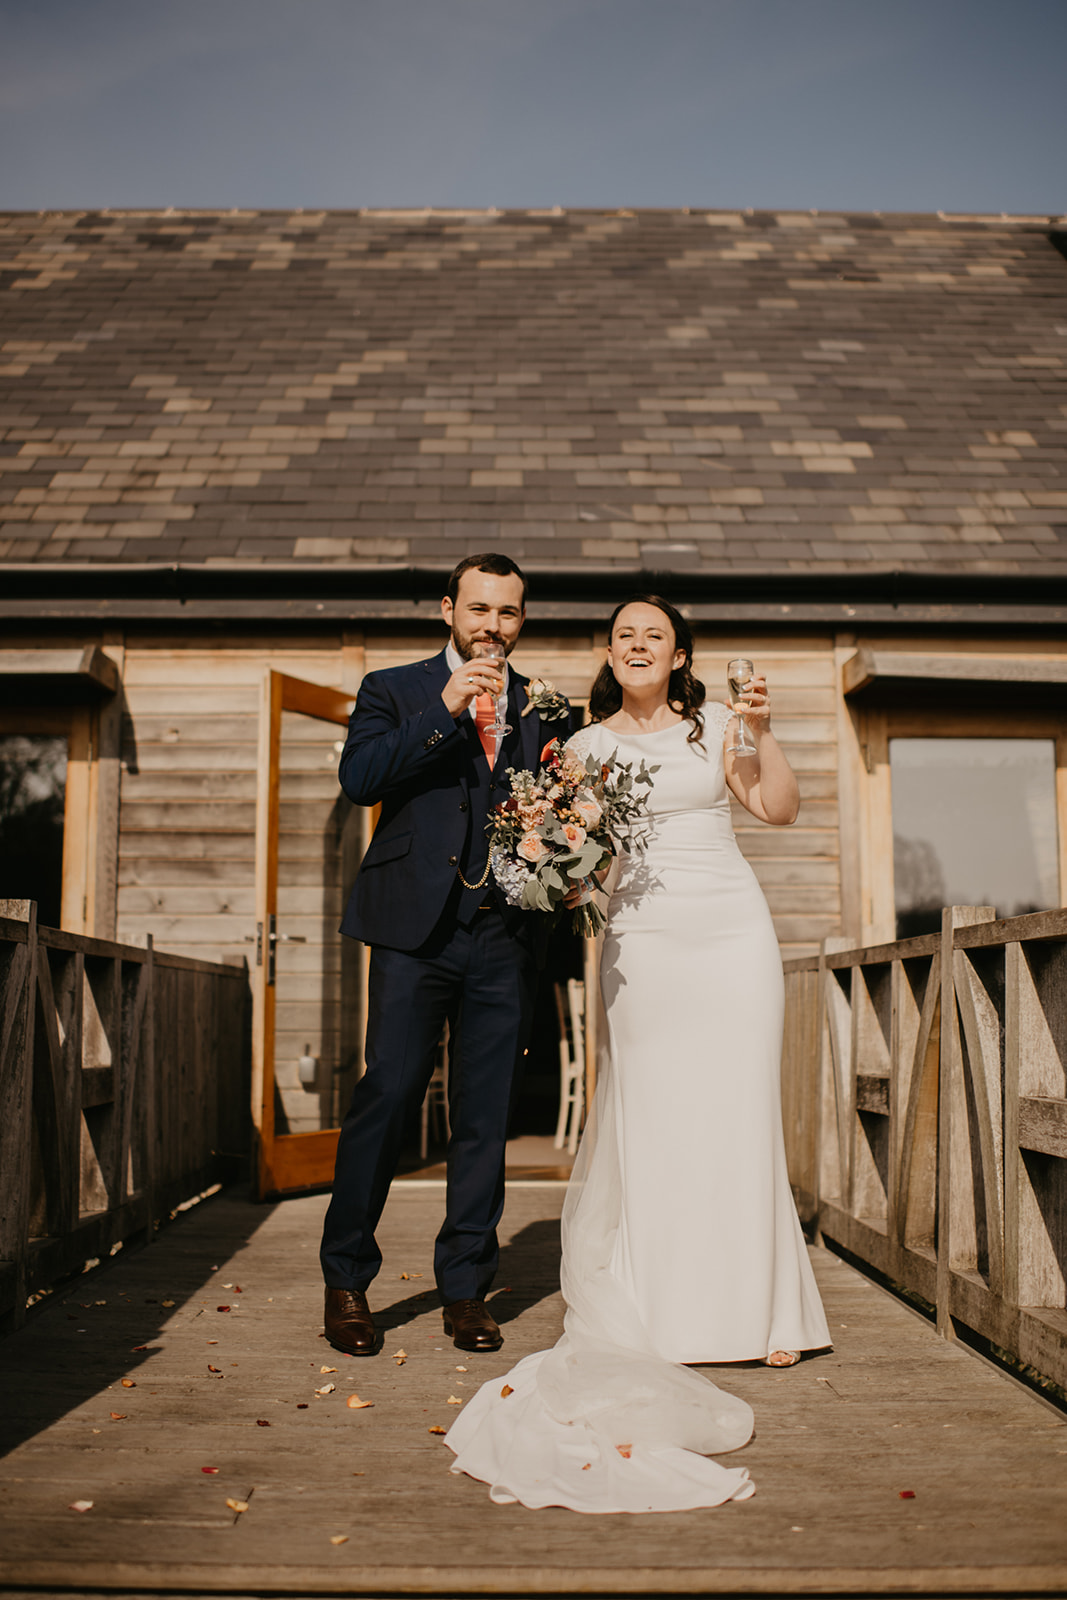 The-Old-Stables-Wedding-478_websize.jpg